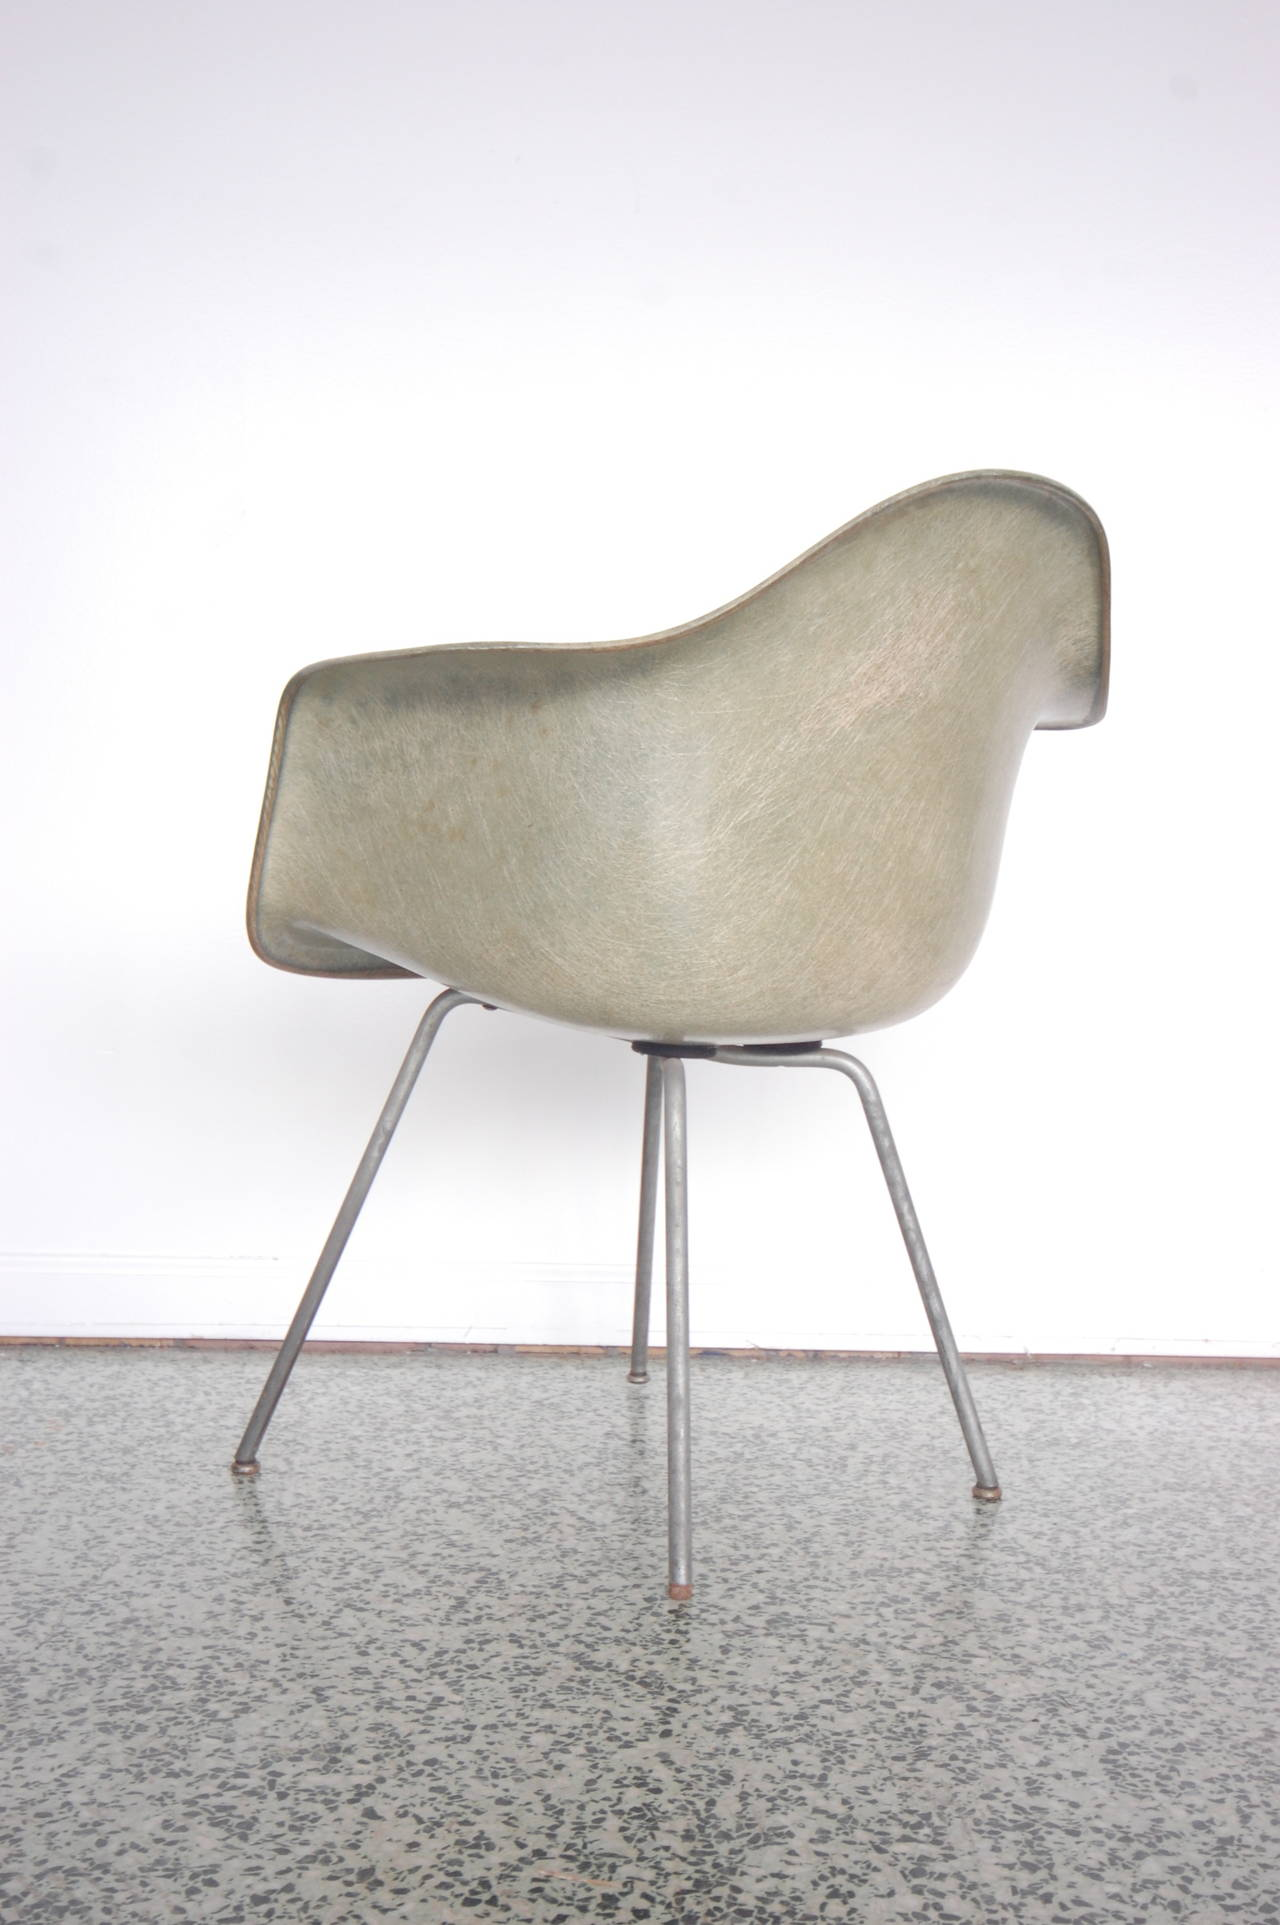 Eames SAX Armchair by Zenith Plastics for Herman Miller In Good Condition For Sale In St. Louis, MO